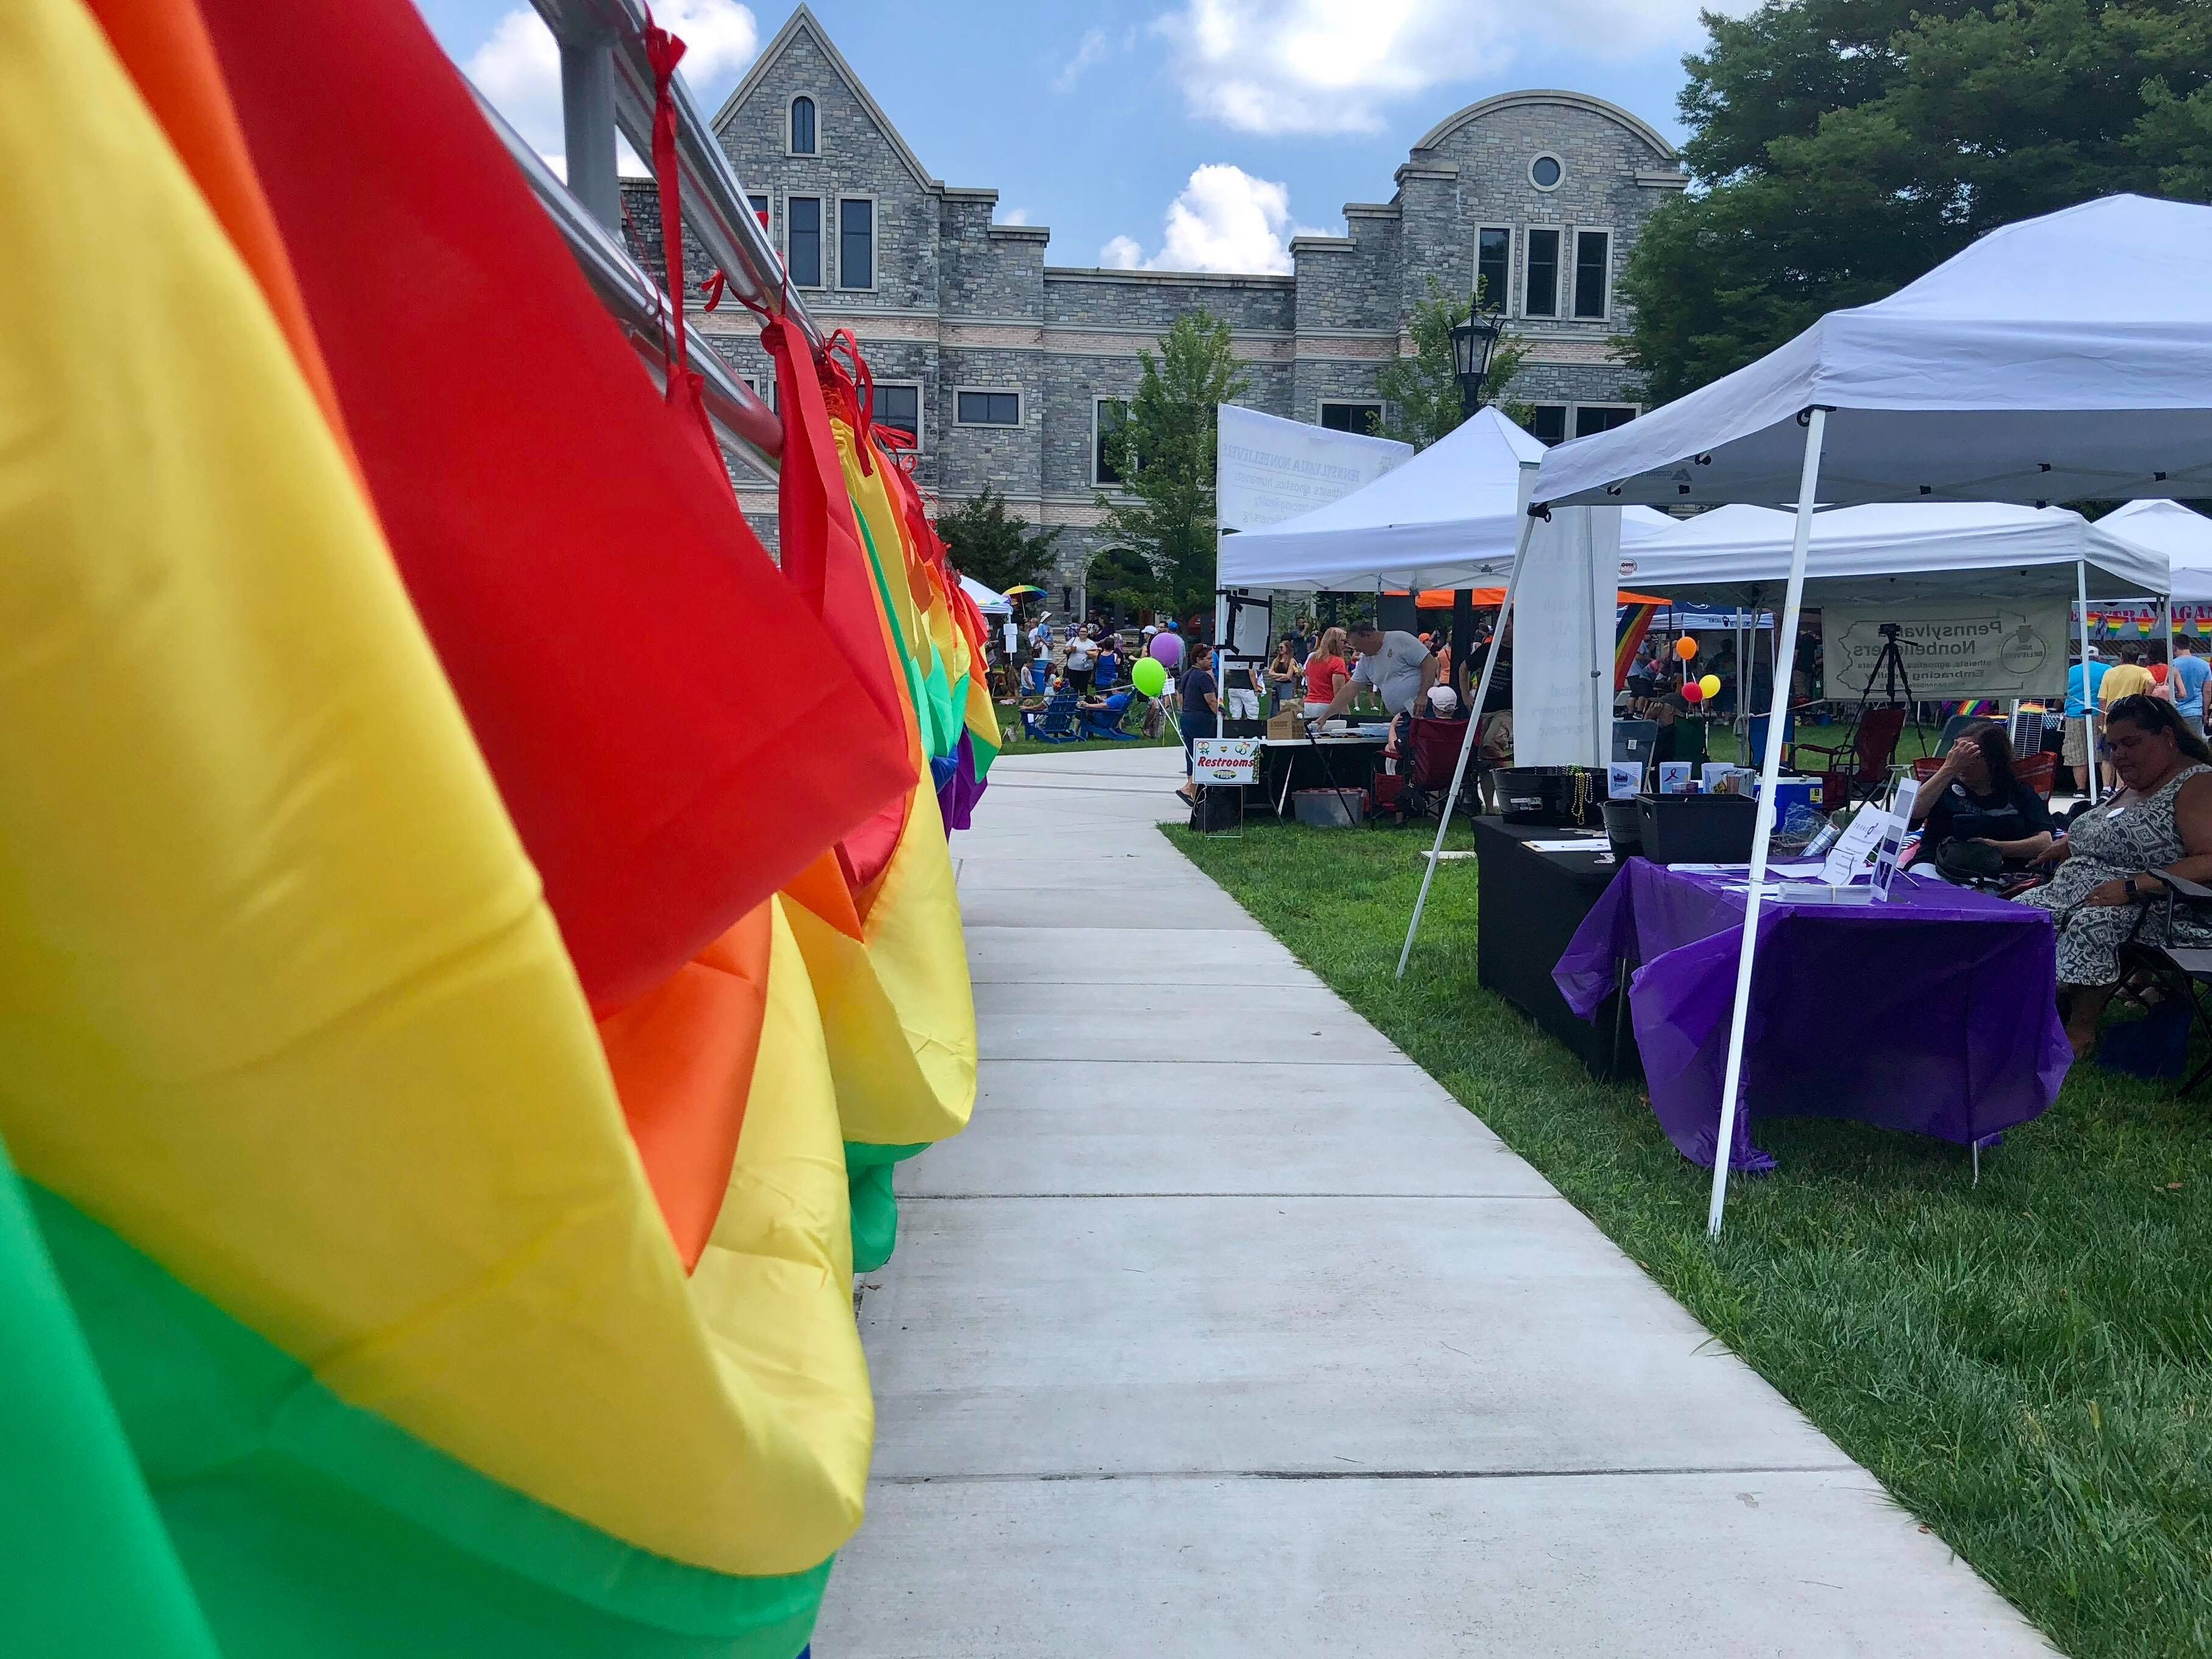 Locals from all over the area came out to show their support for the LGBTQ community at Franklin County's first Pride festival the afternoon of Sunday, Aug. 5, 2018 at Wilson College in Chambersburg.